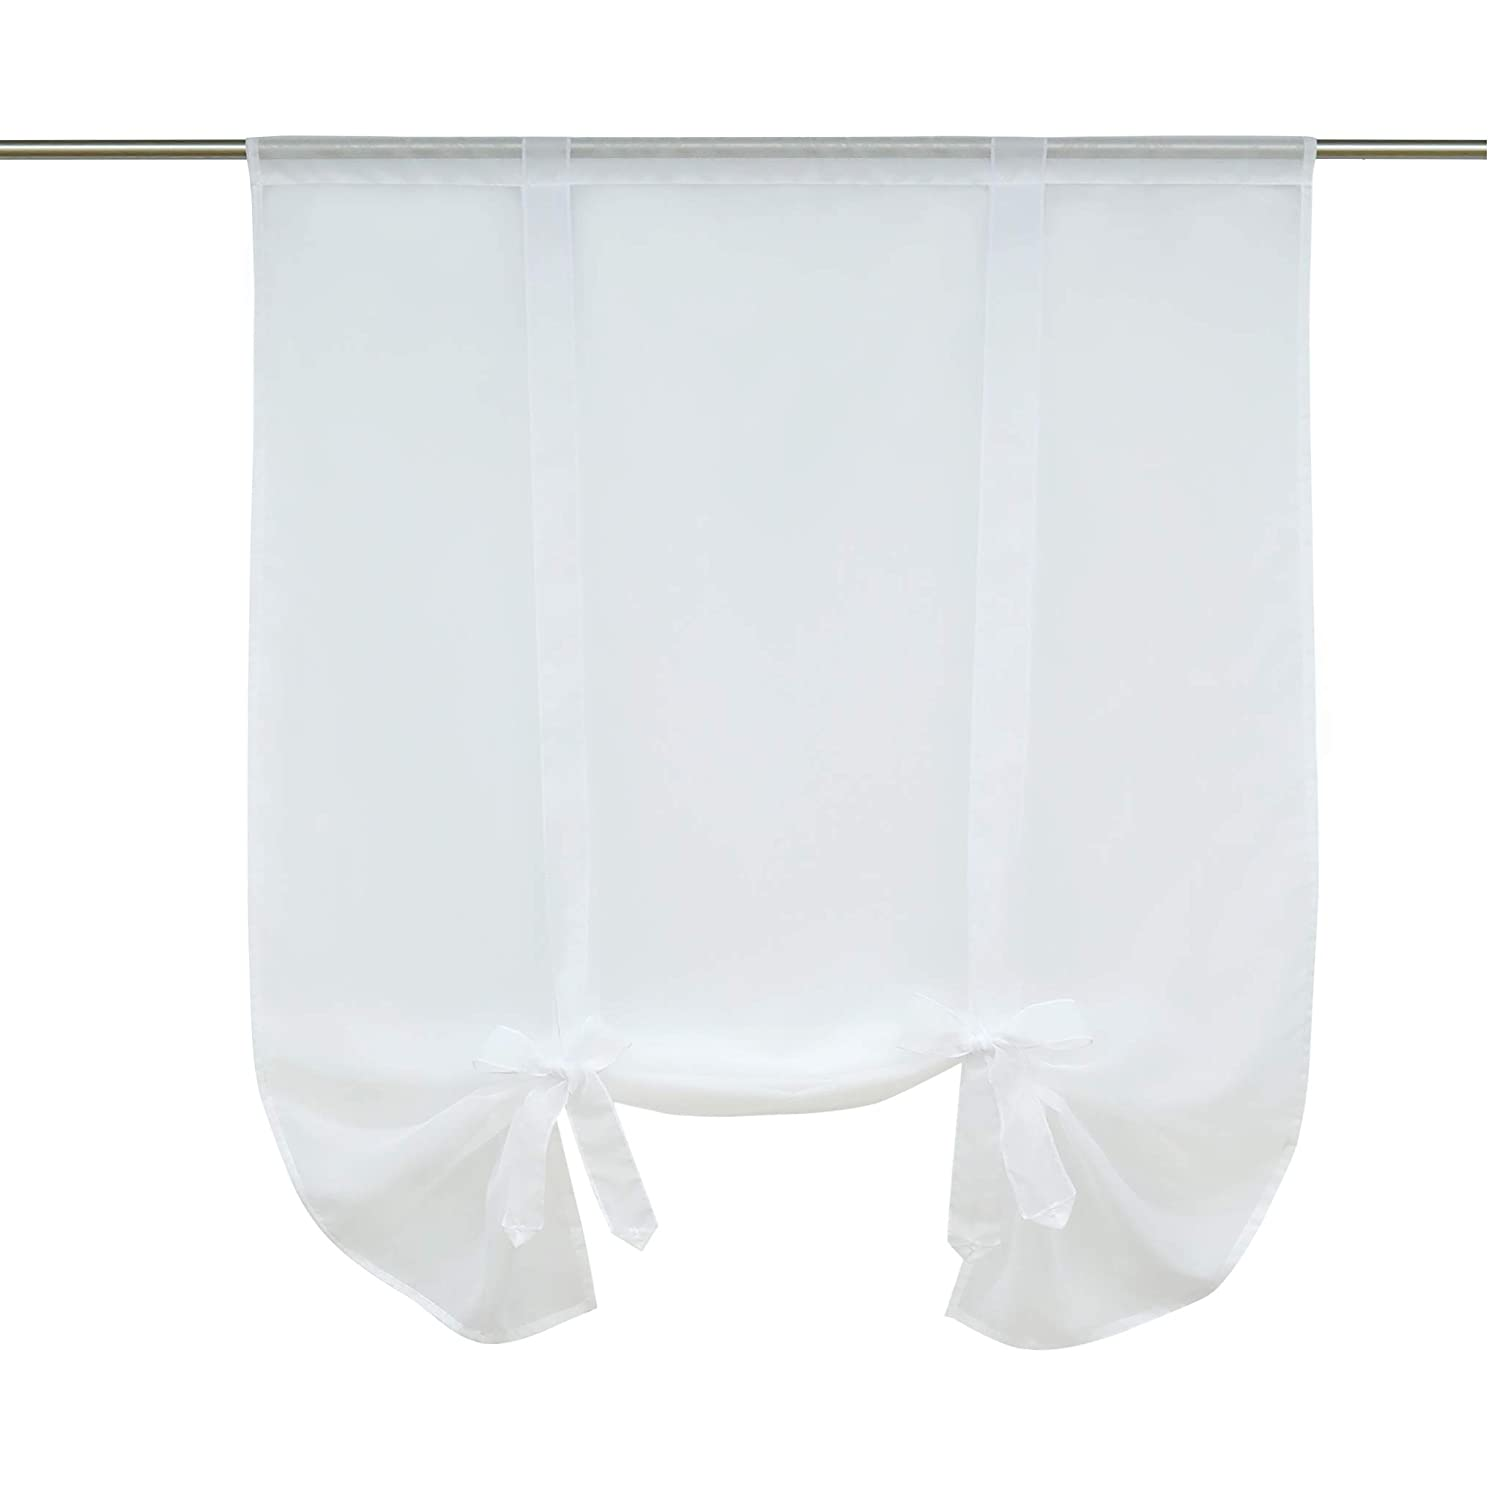 "ISINO 1 Piece Rod Pocket Ribbon Tie Up Curtain Sheer Voile Balloon Shades W 23"" x H 55"" White"